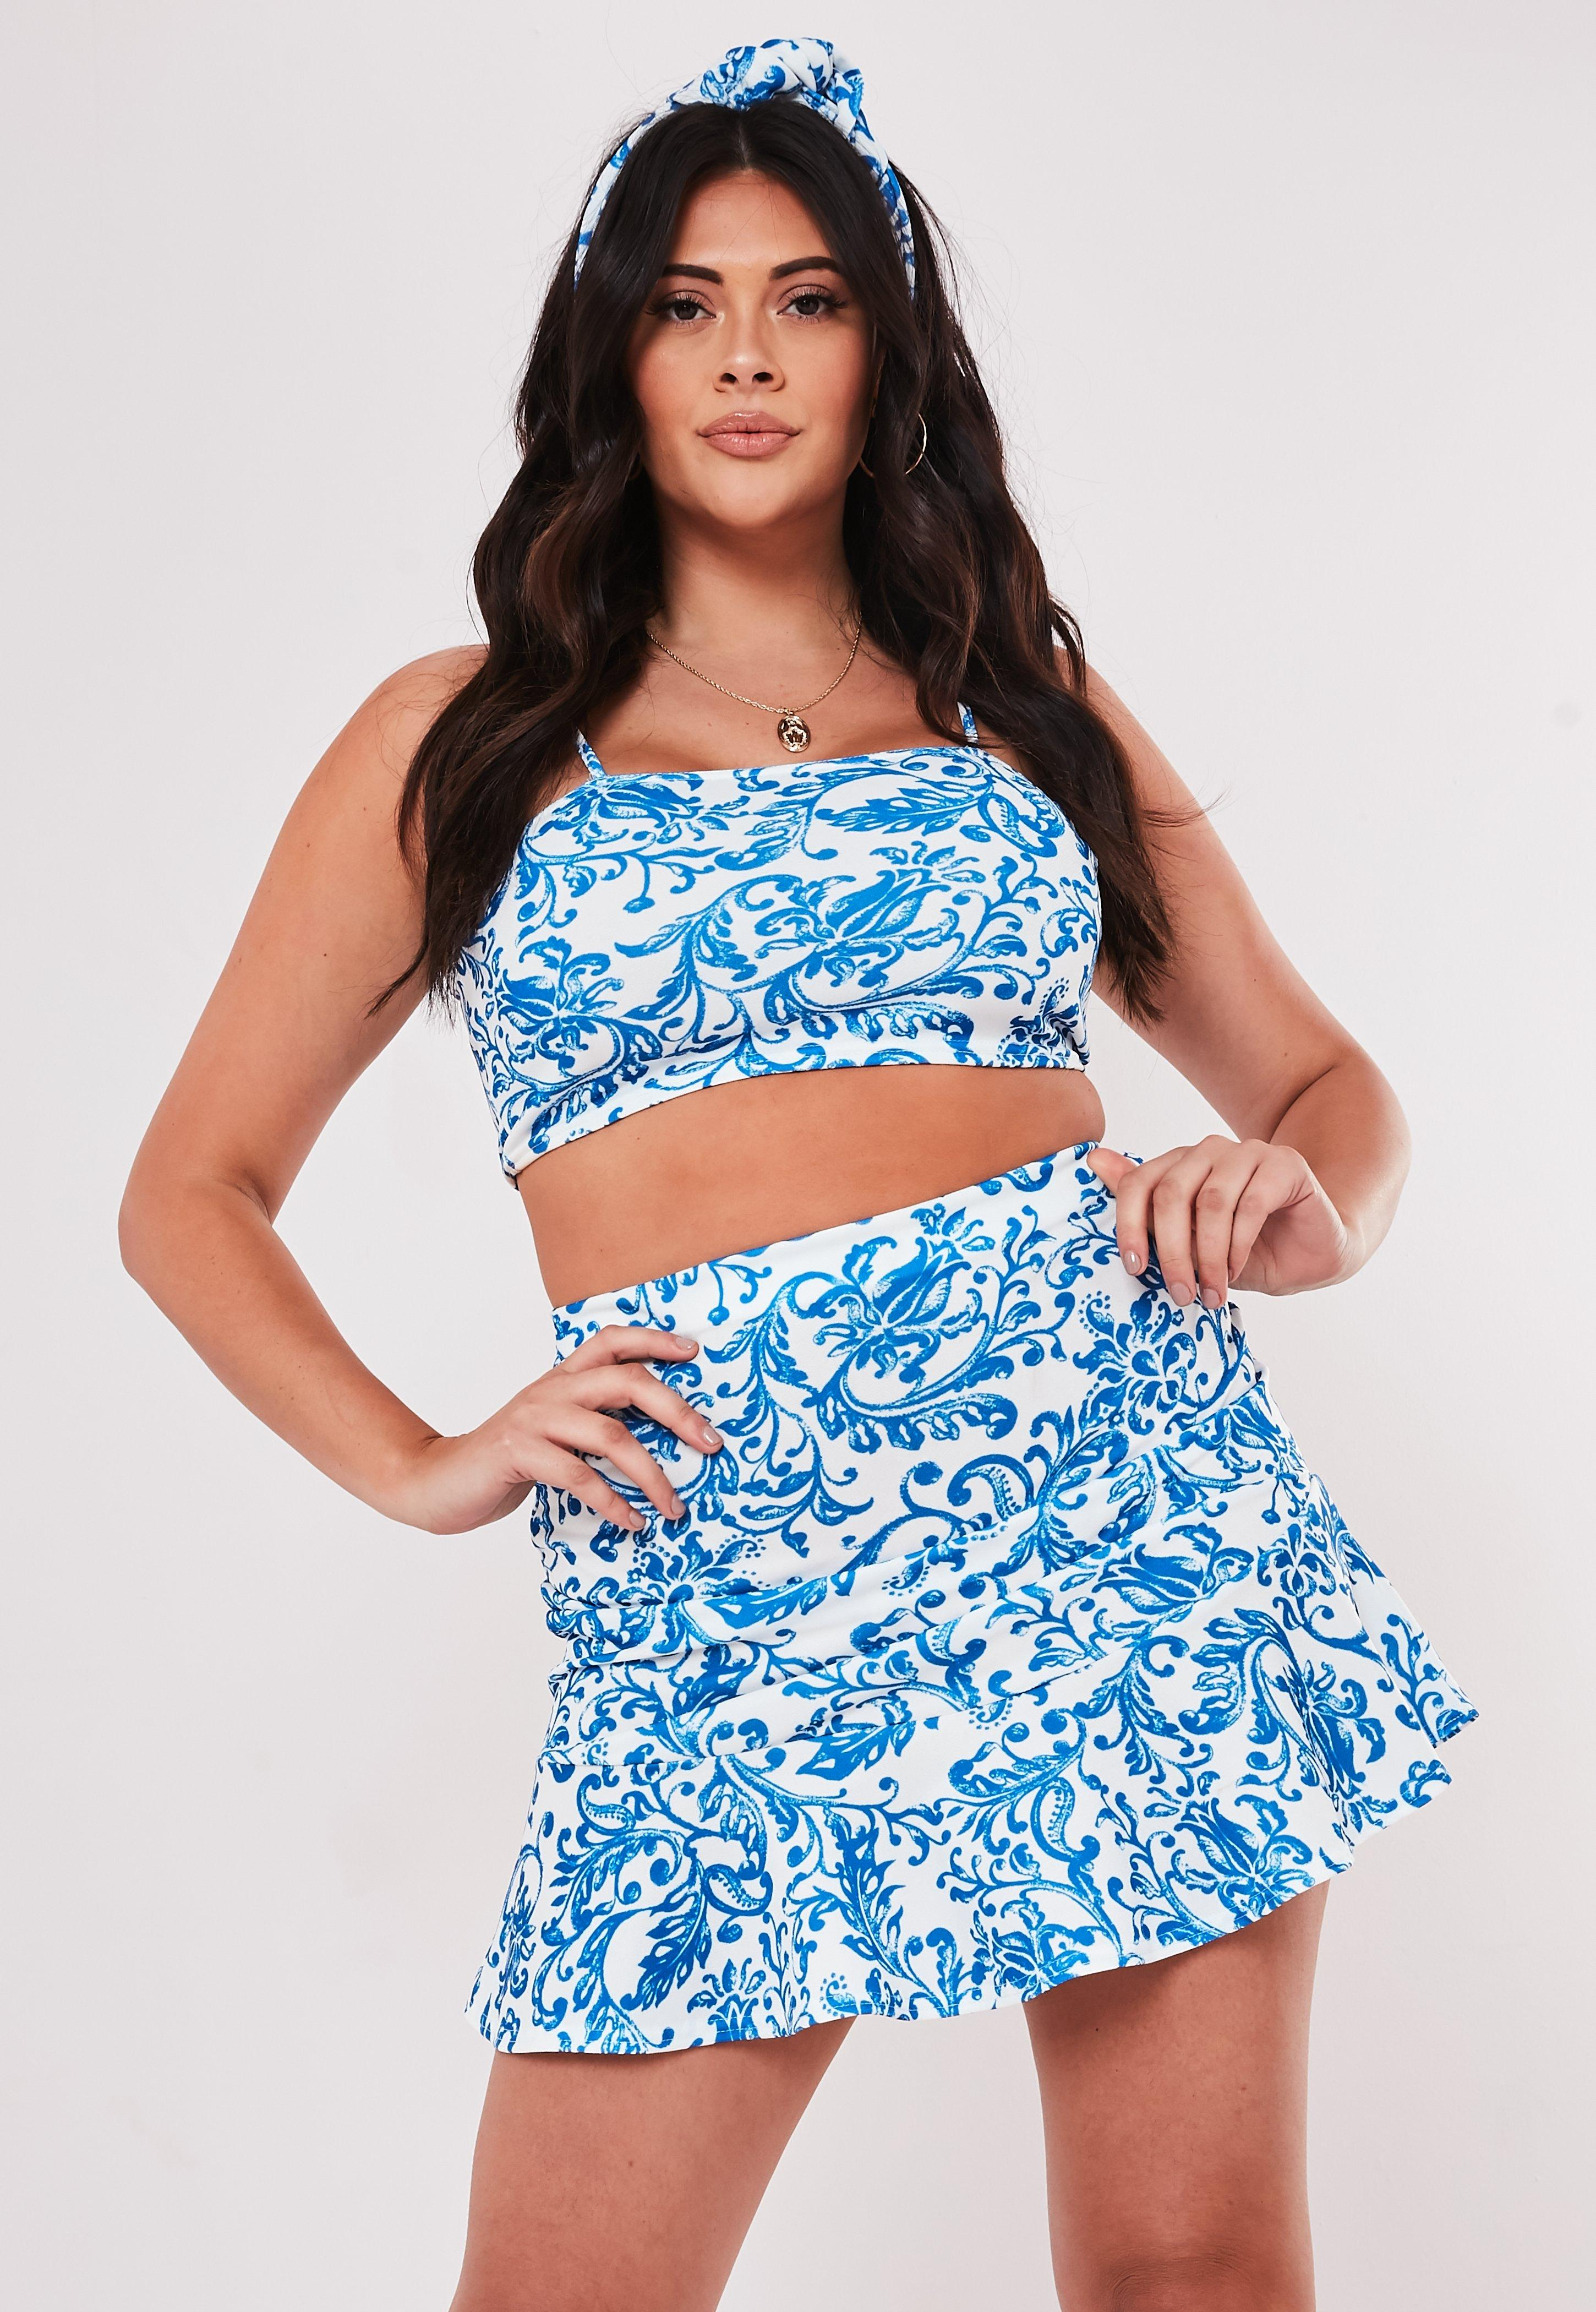 In The Style Co Ord 2 Piece Size 6 Women's Clothing